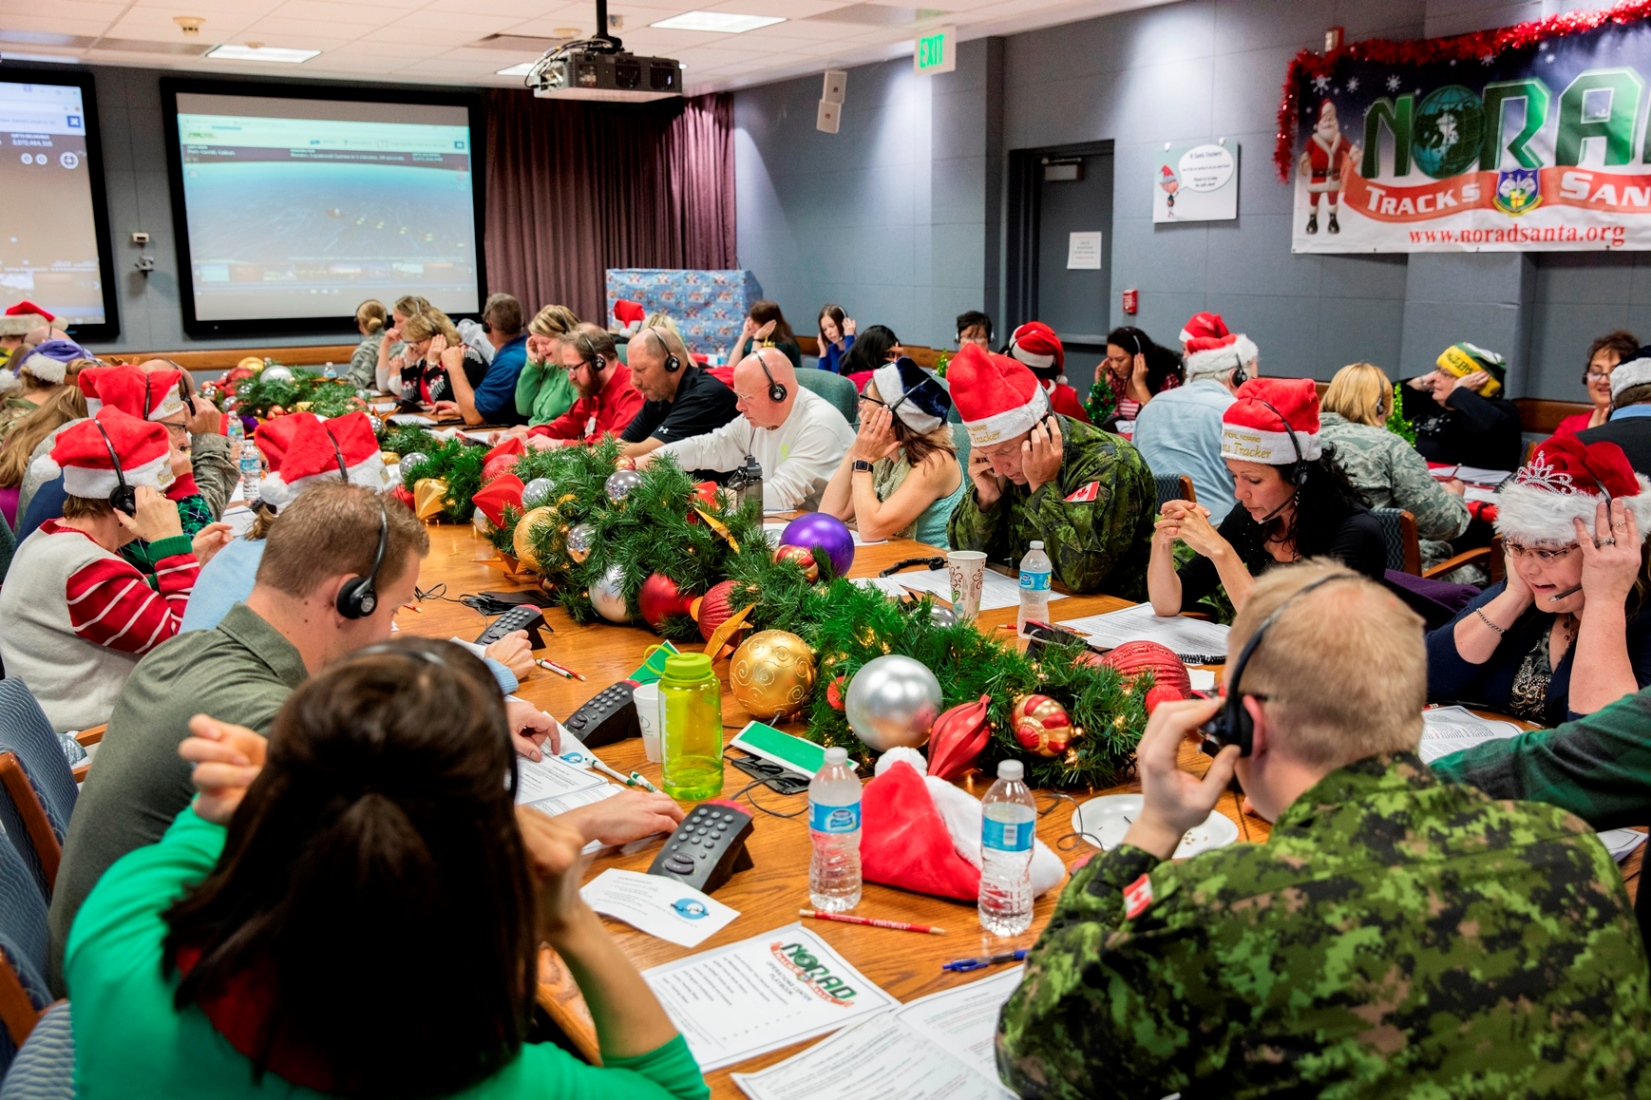 Canadian and American, military and civilian: volunteers answer phones during the 2016 NORAD Tracks Santa Event at Peterson Air Force Base in Colorado on December 24. During the 2016 NTS event, 1,500 volunteers answered 150,000 phone calls, 2,800 emails and 3,000 On-Star requests from children around the world who asked about Santa's location and when he would arrive at their house. PHOTO: Dennis Carlyle, NORAD, 161224-F-CN249-166